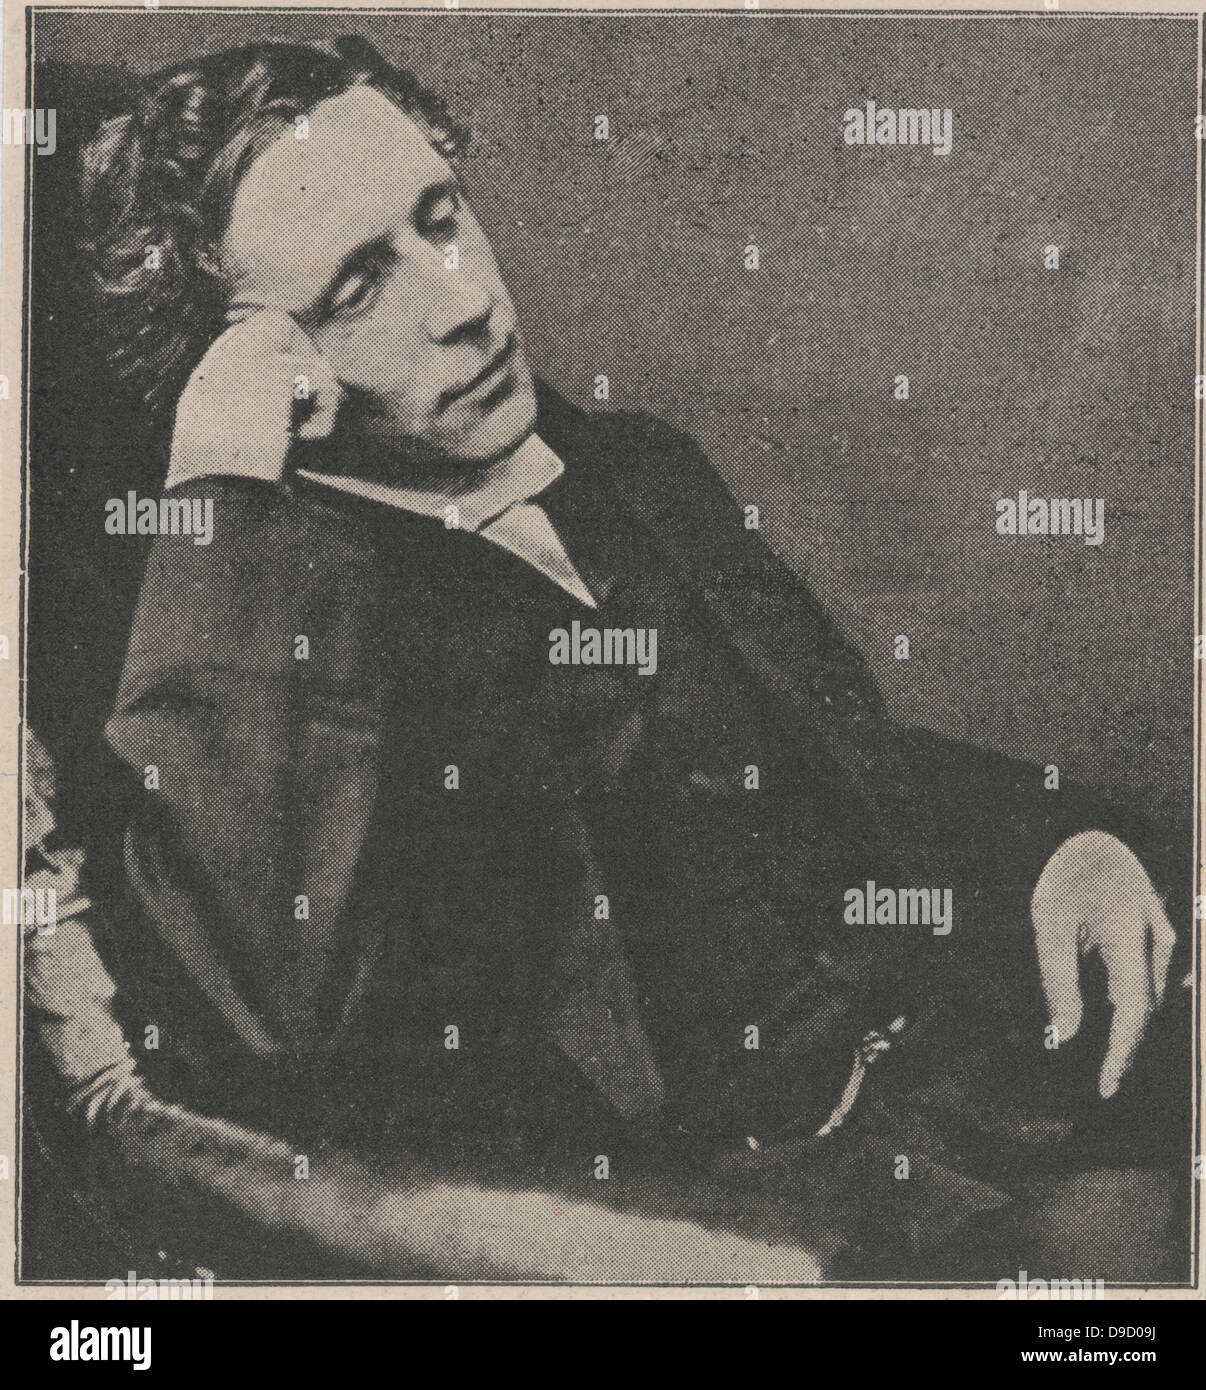 Lewis Carroll, pseudonym of Charles Lutwidge Dodgson (1832-1898) English mathematician, logician, author of the - Stock Image